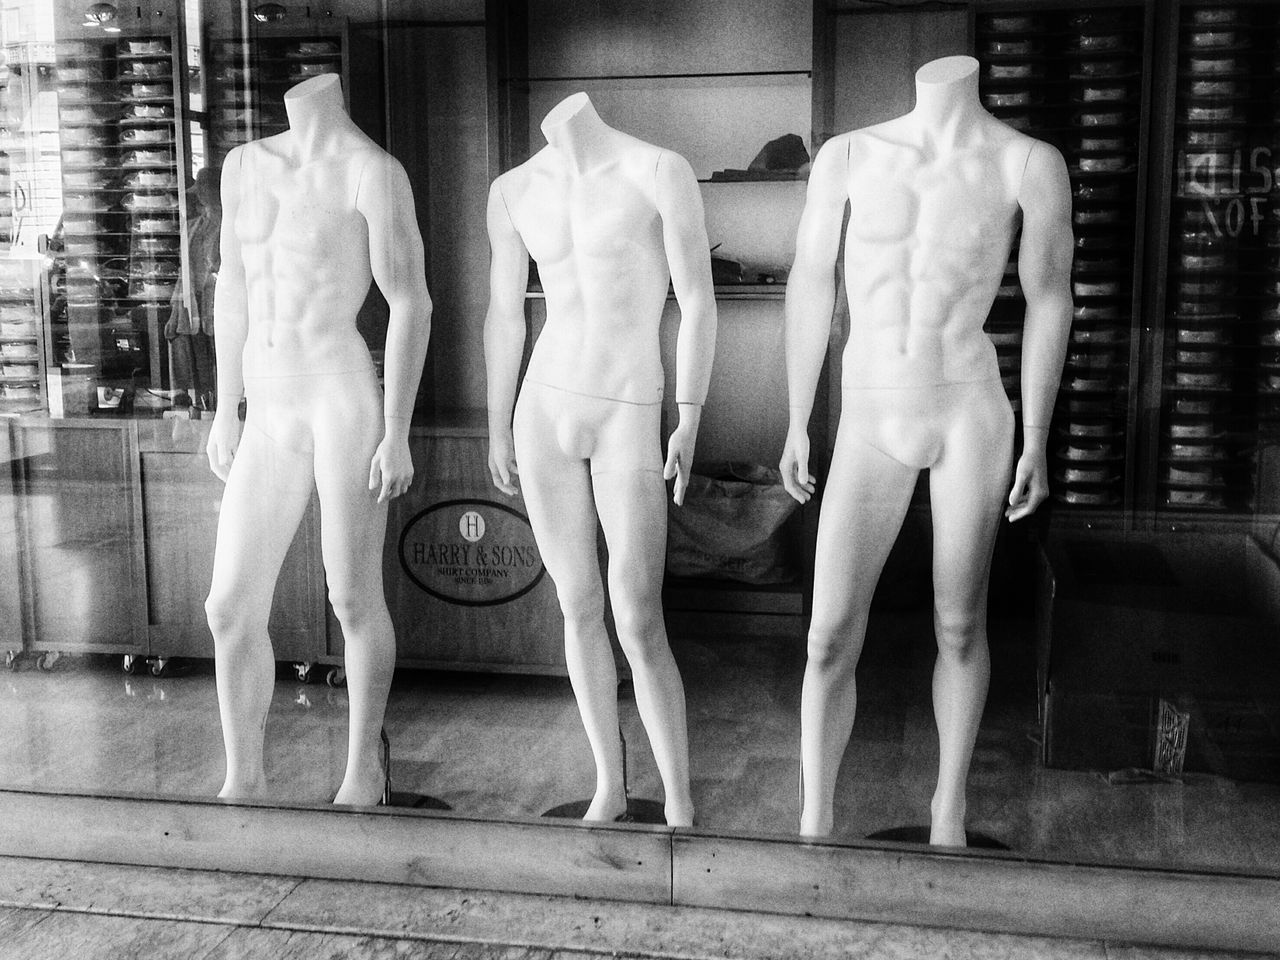 mannequin, fashion, store, human representation, clothing, retail, men, indoors, day, people